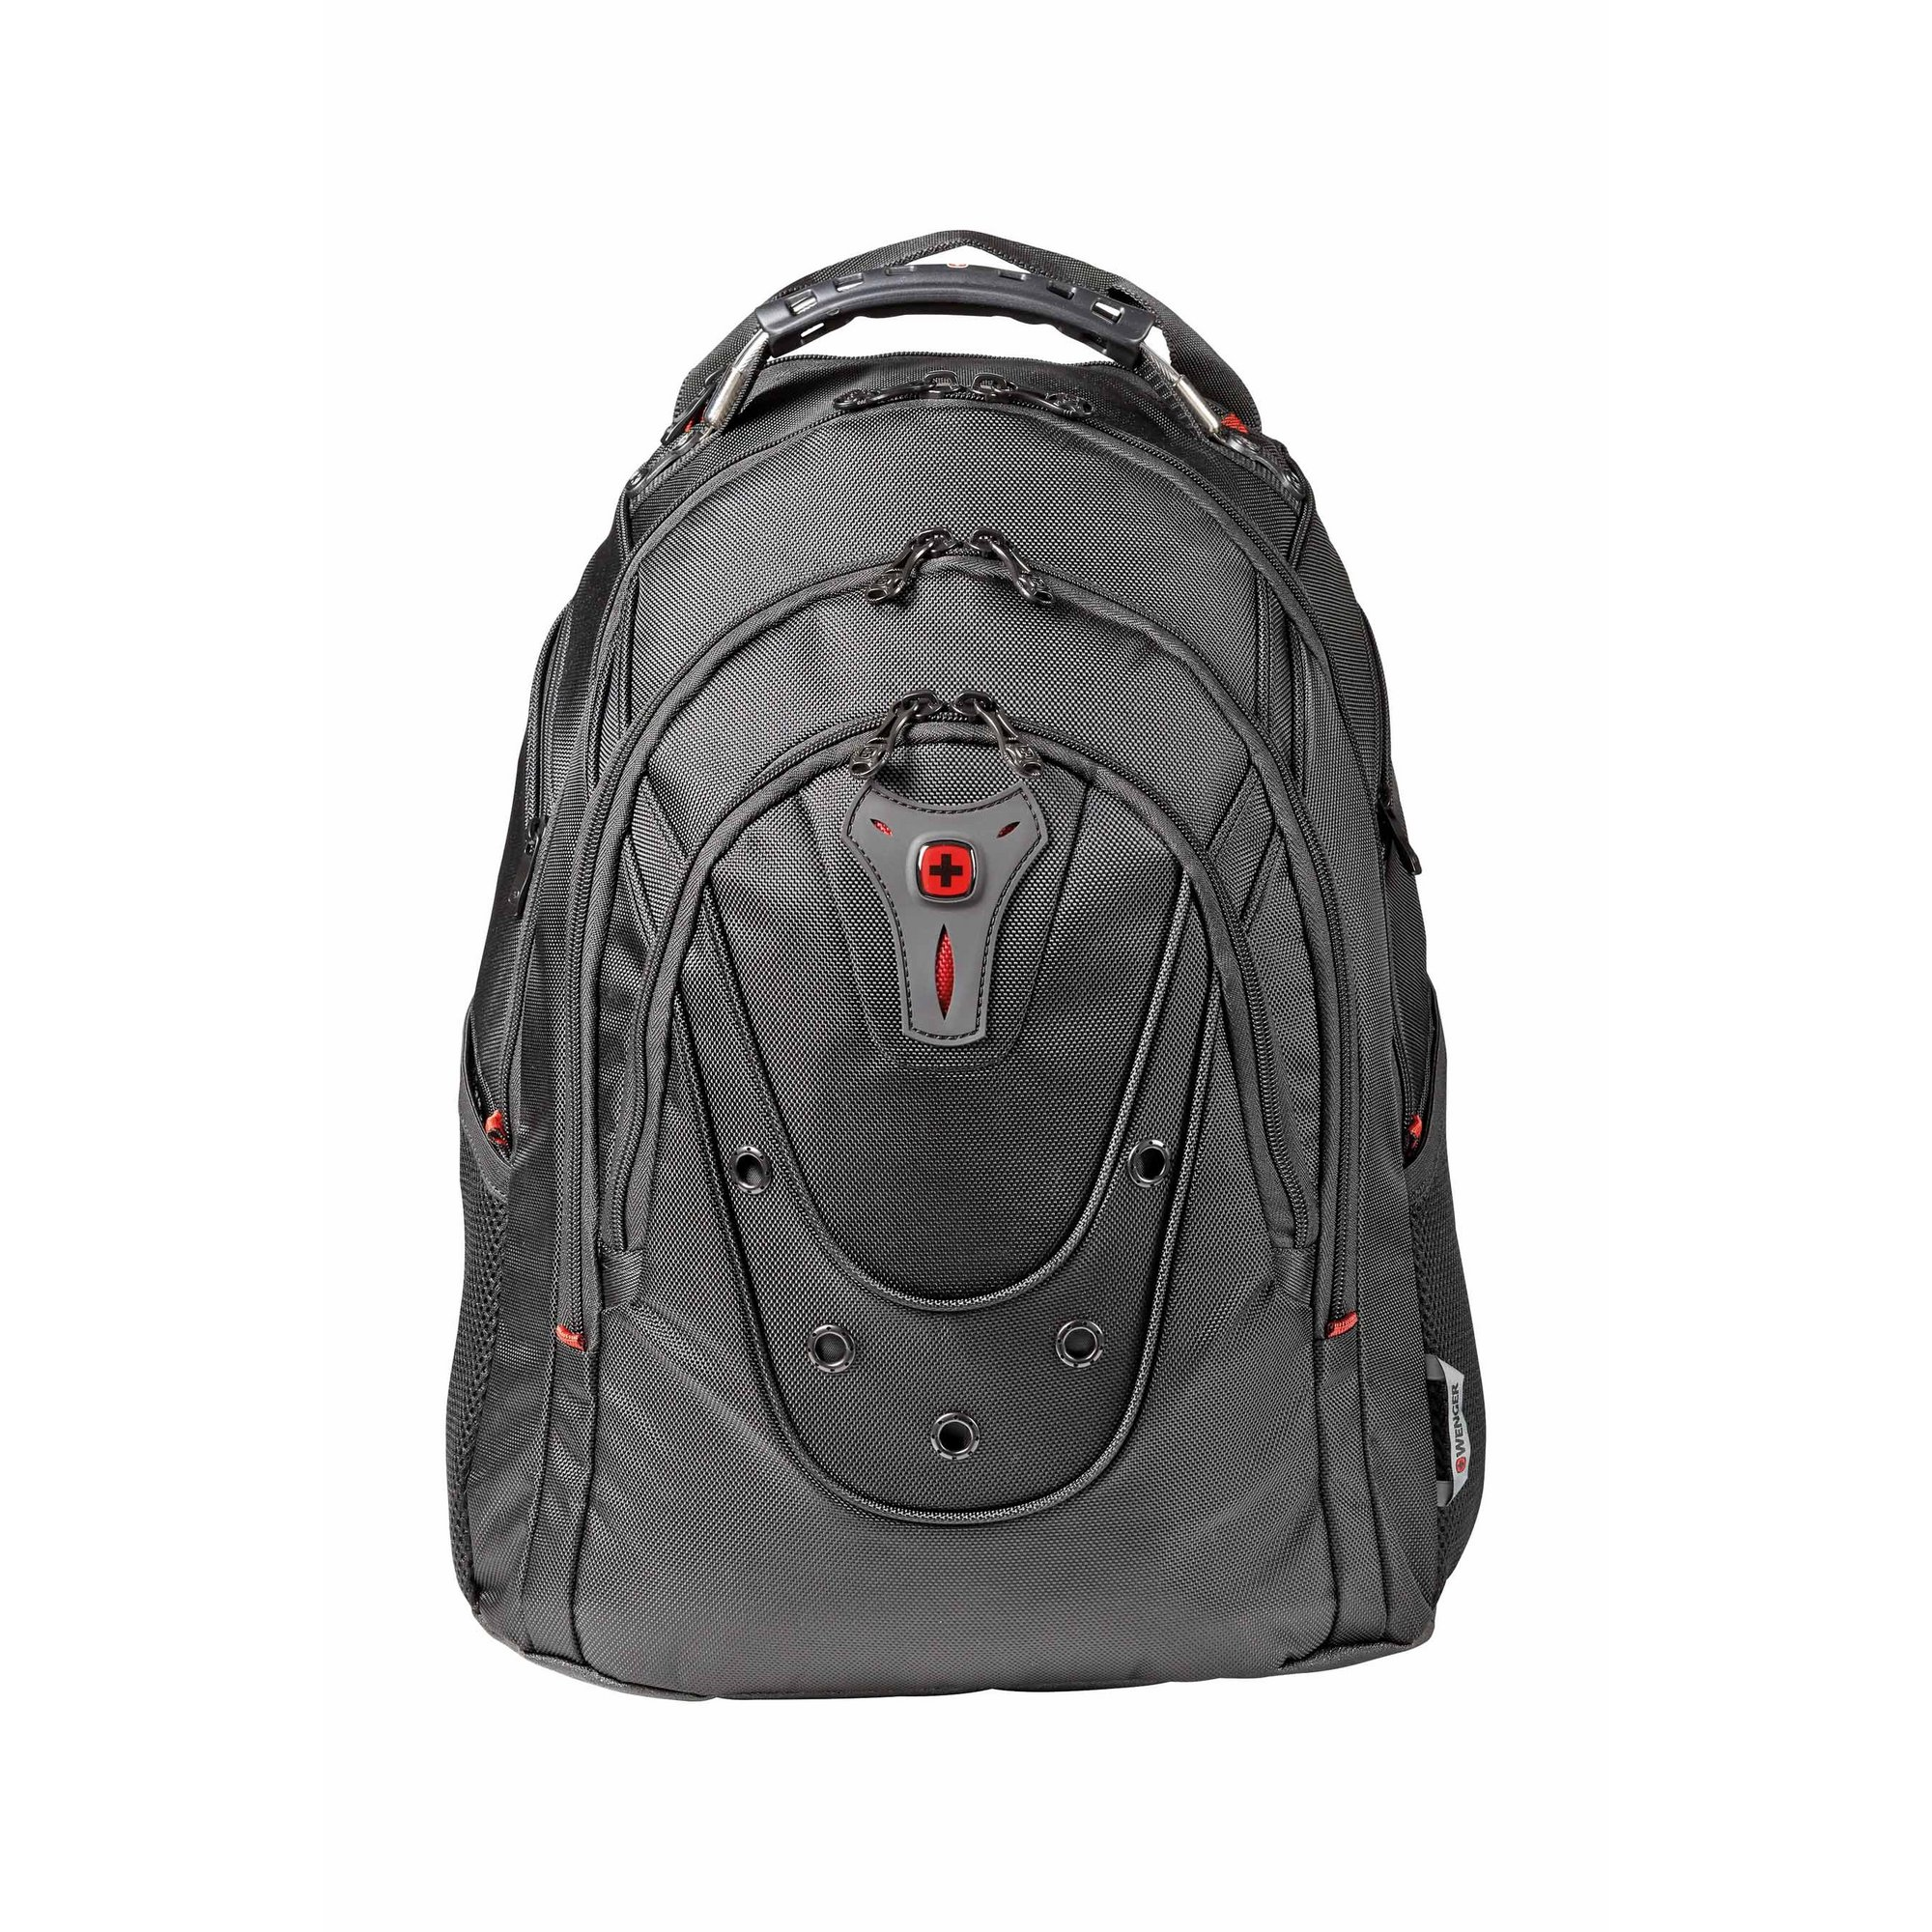 Image of Wenger iBex Slim Laptop Backpack